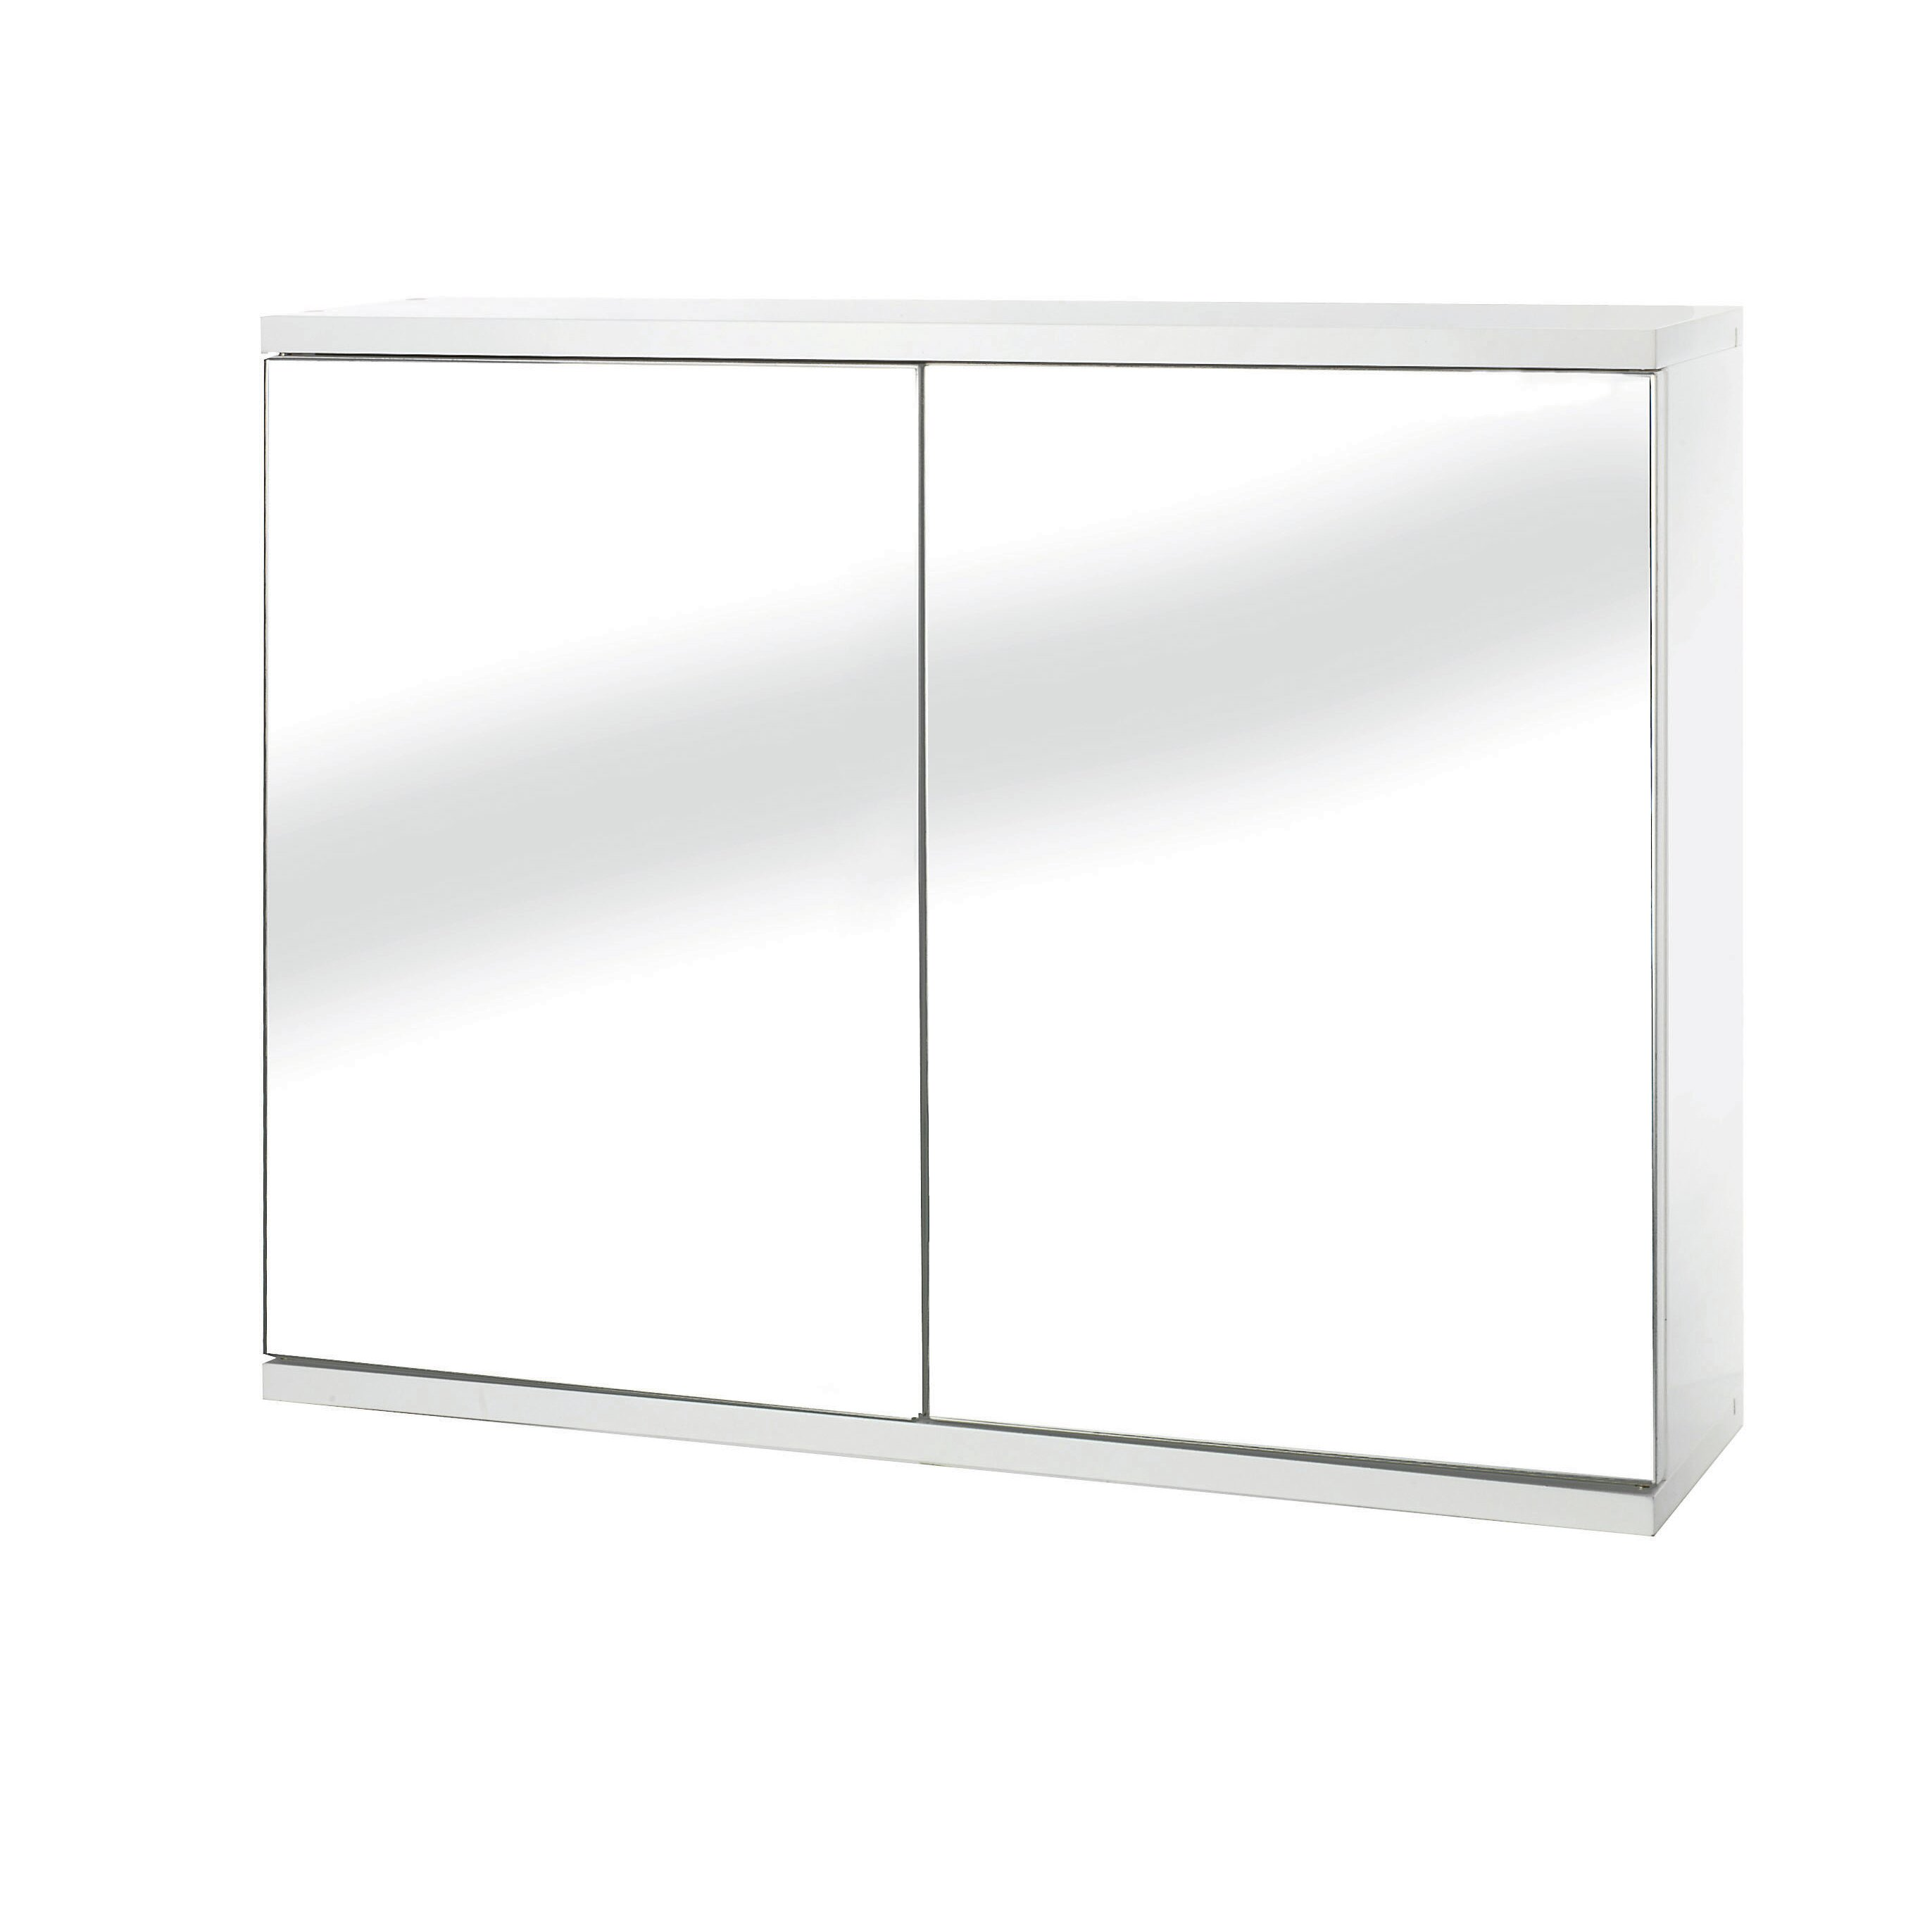 Belfry simplicity 60cm x 45cm surface mount mirror cabinet for Mirror 45 x 60